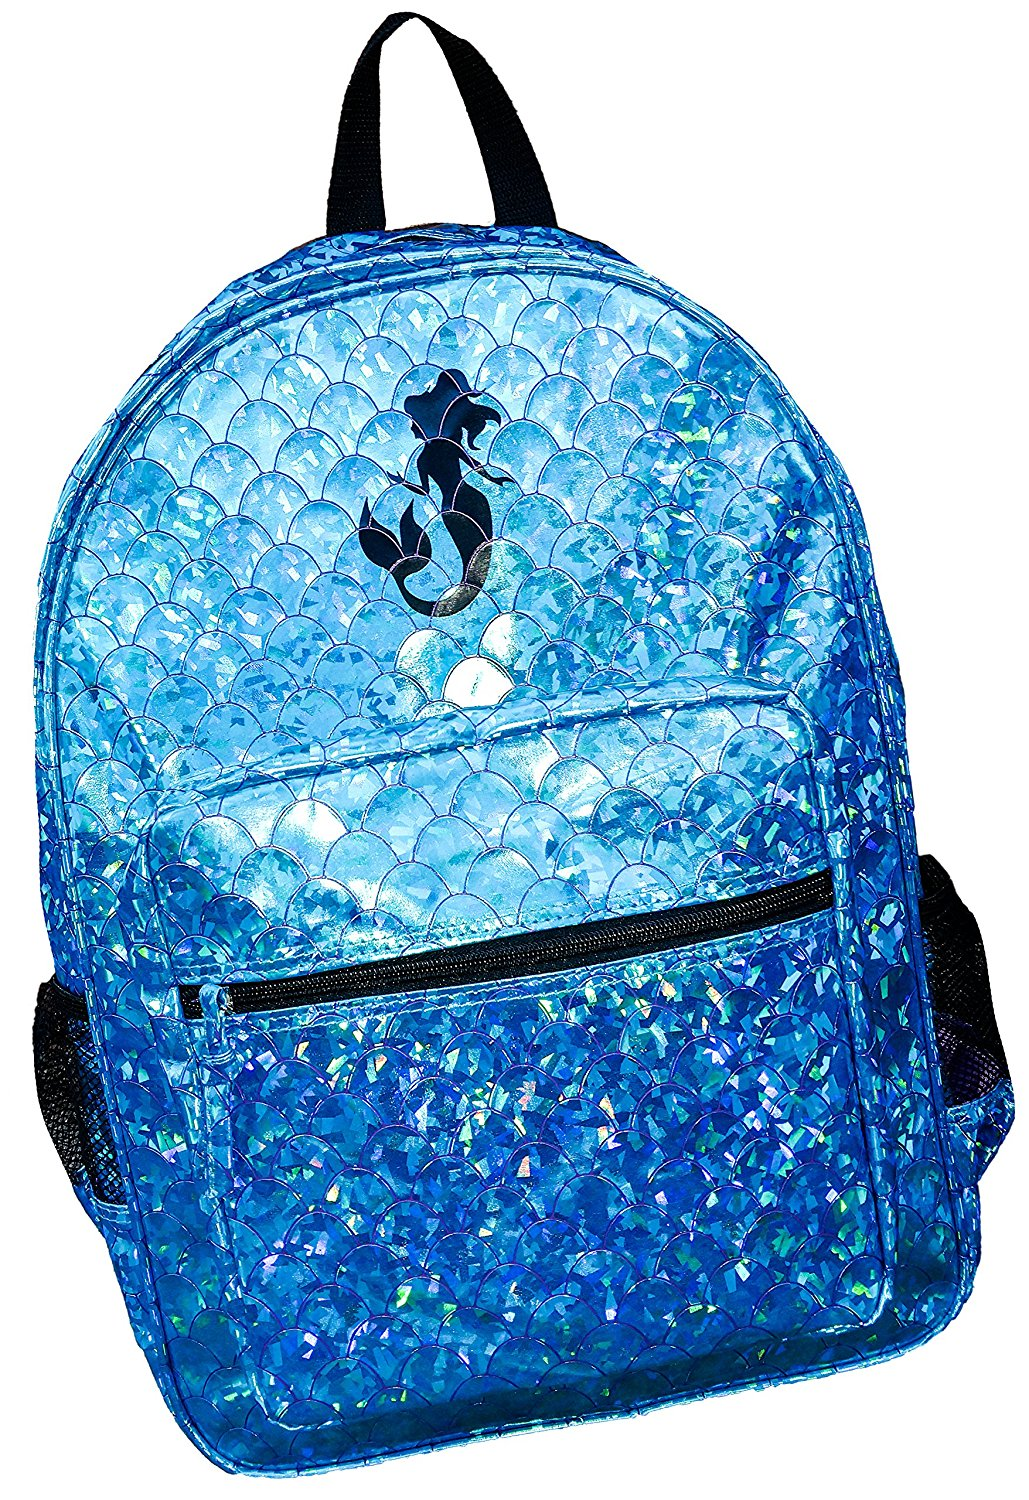 e8d576cb80d4 Get Quotations · Girls School Backpack Mermaid Scales Book Bag Trip  Turquoise Shiny Shimmer